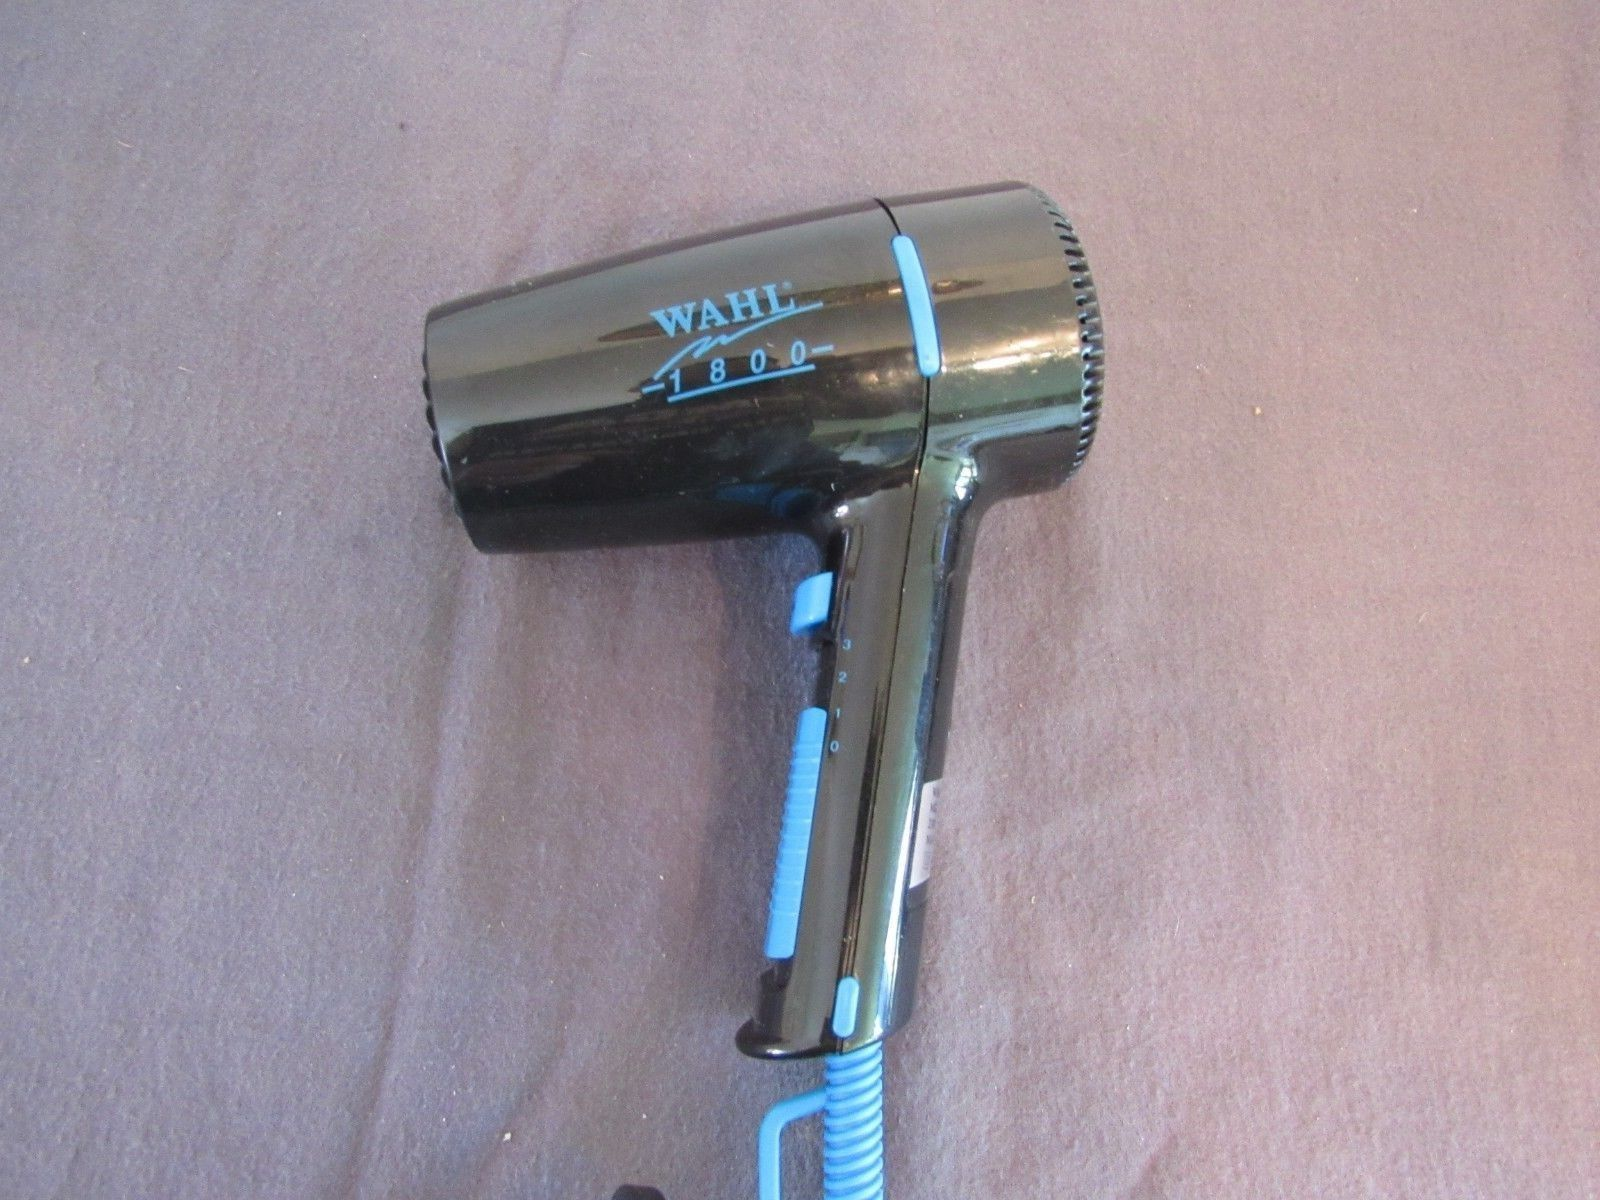 Wahl 1800 International Hair Dryer ZX151-1